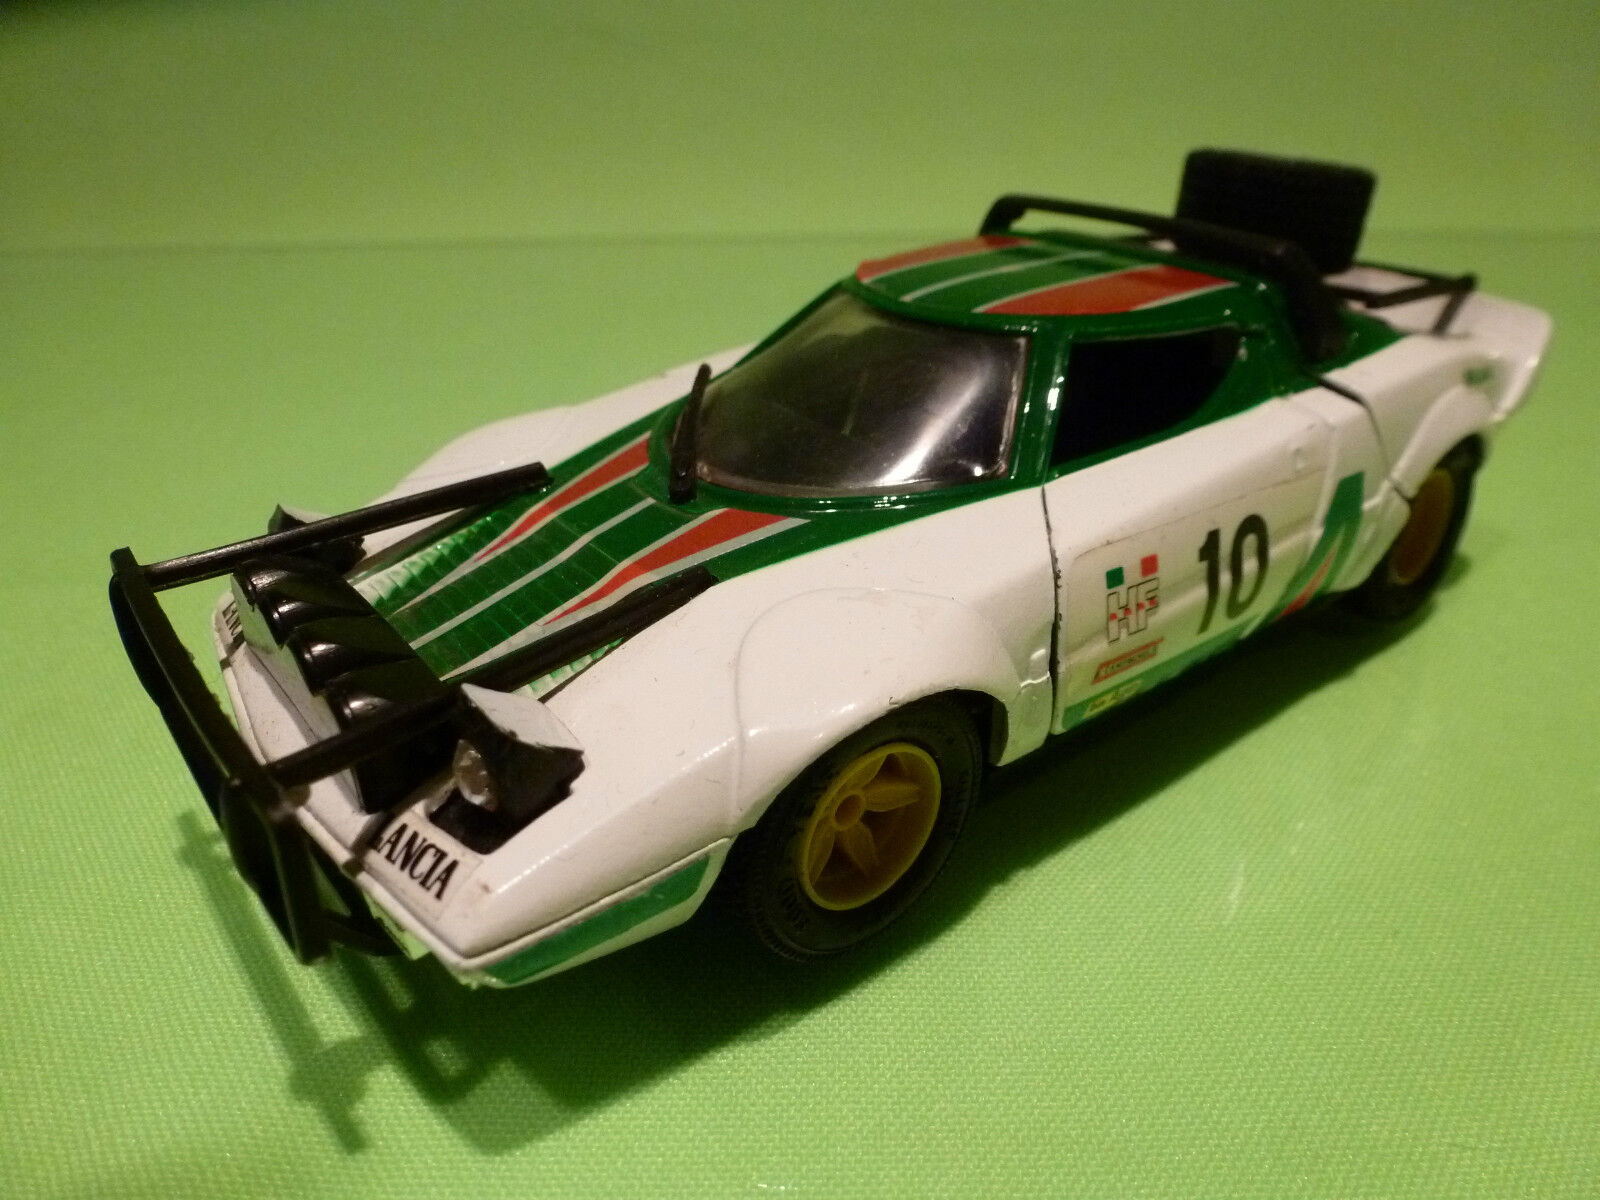 EIDAI GRIP 128 - LANCIA STRATOS ALITALIA    - NEAR MINT  CONDITION